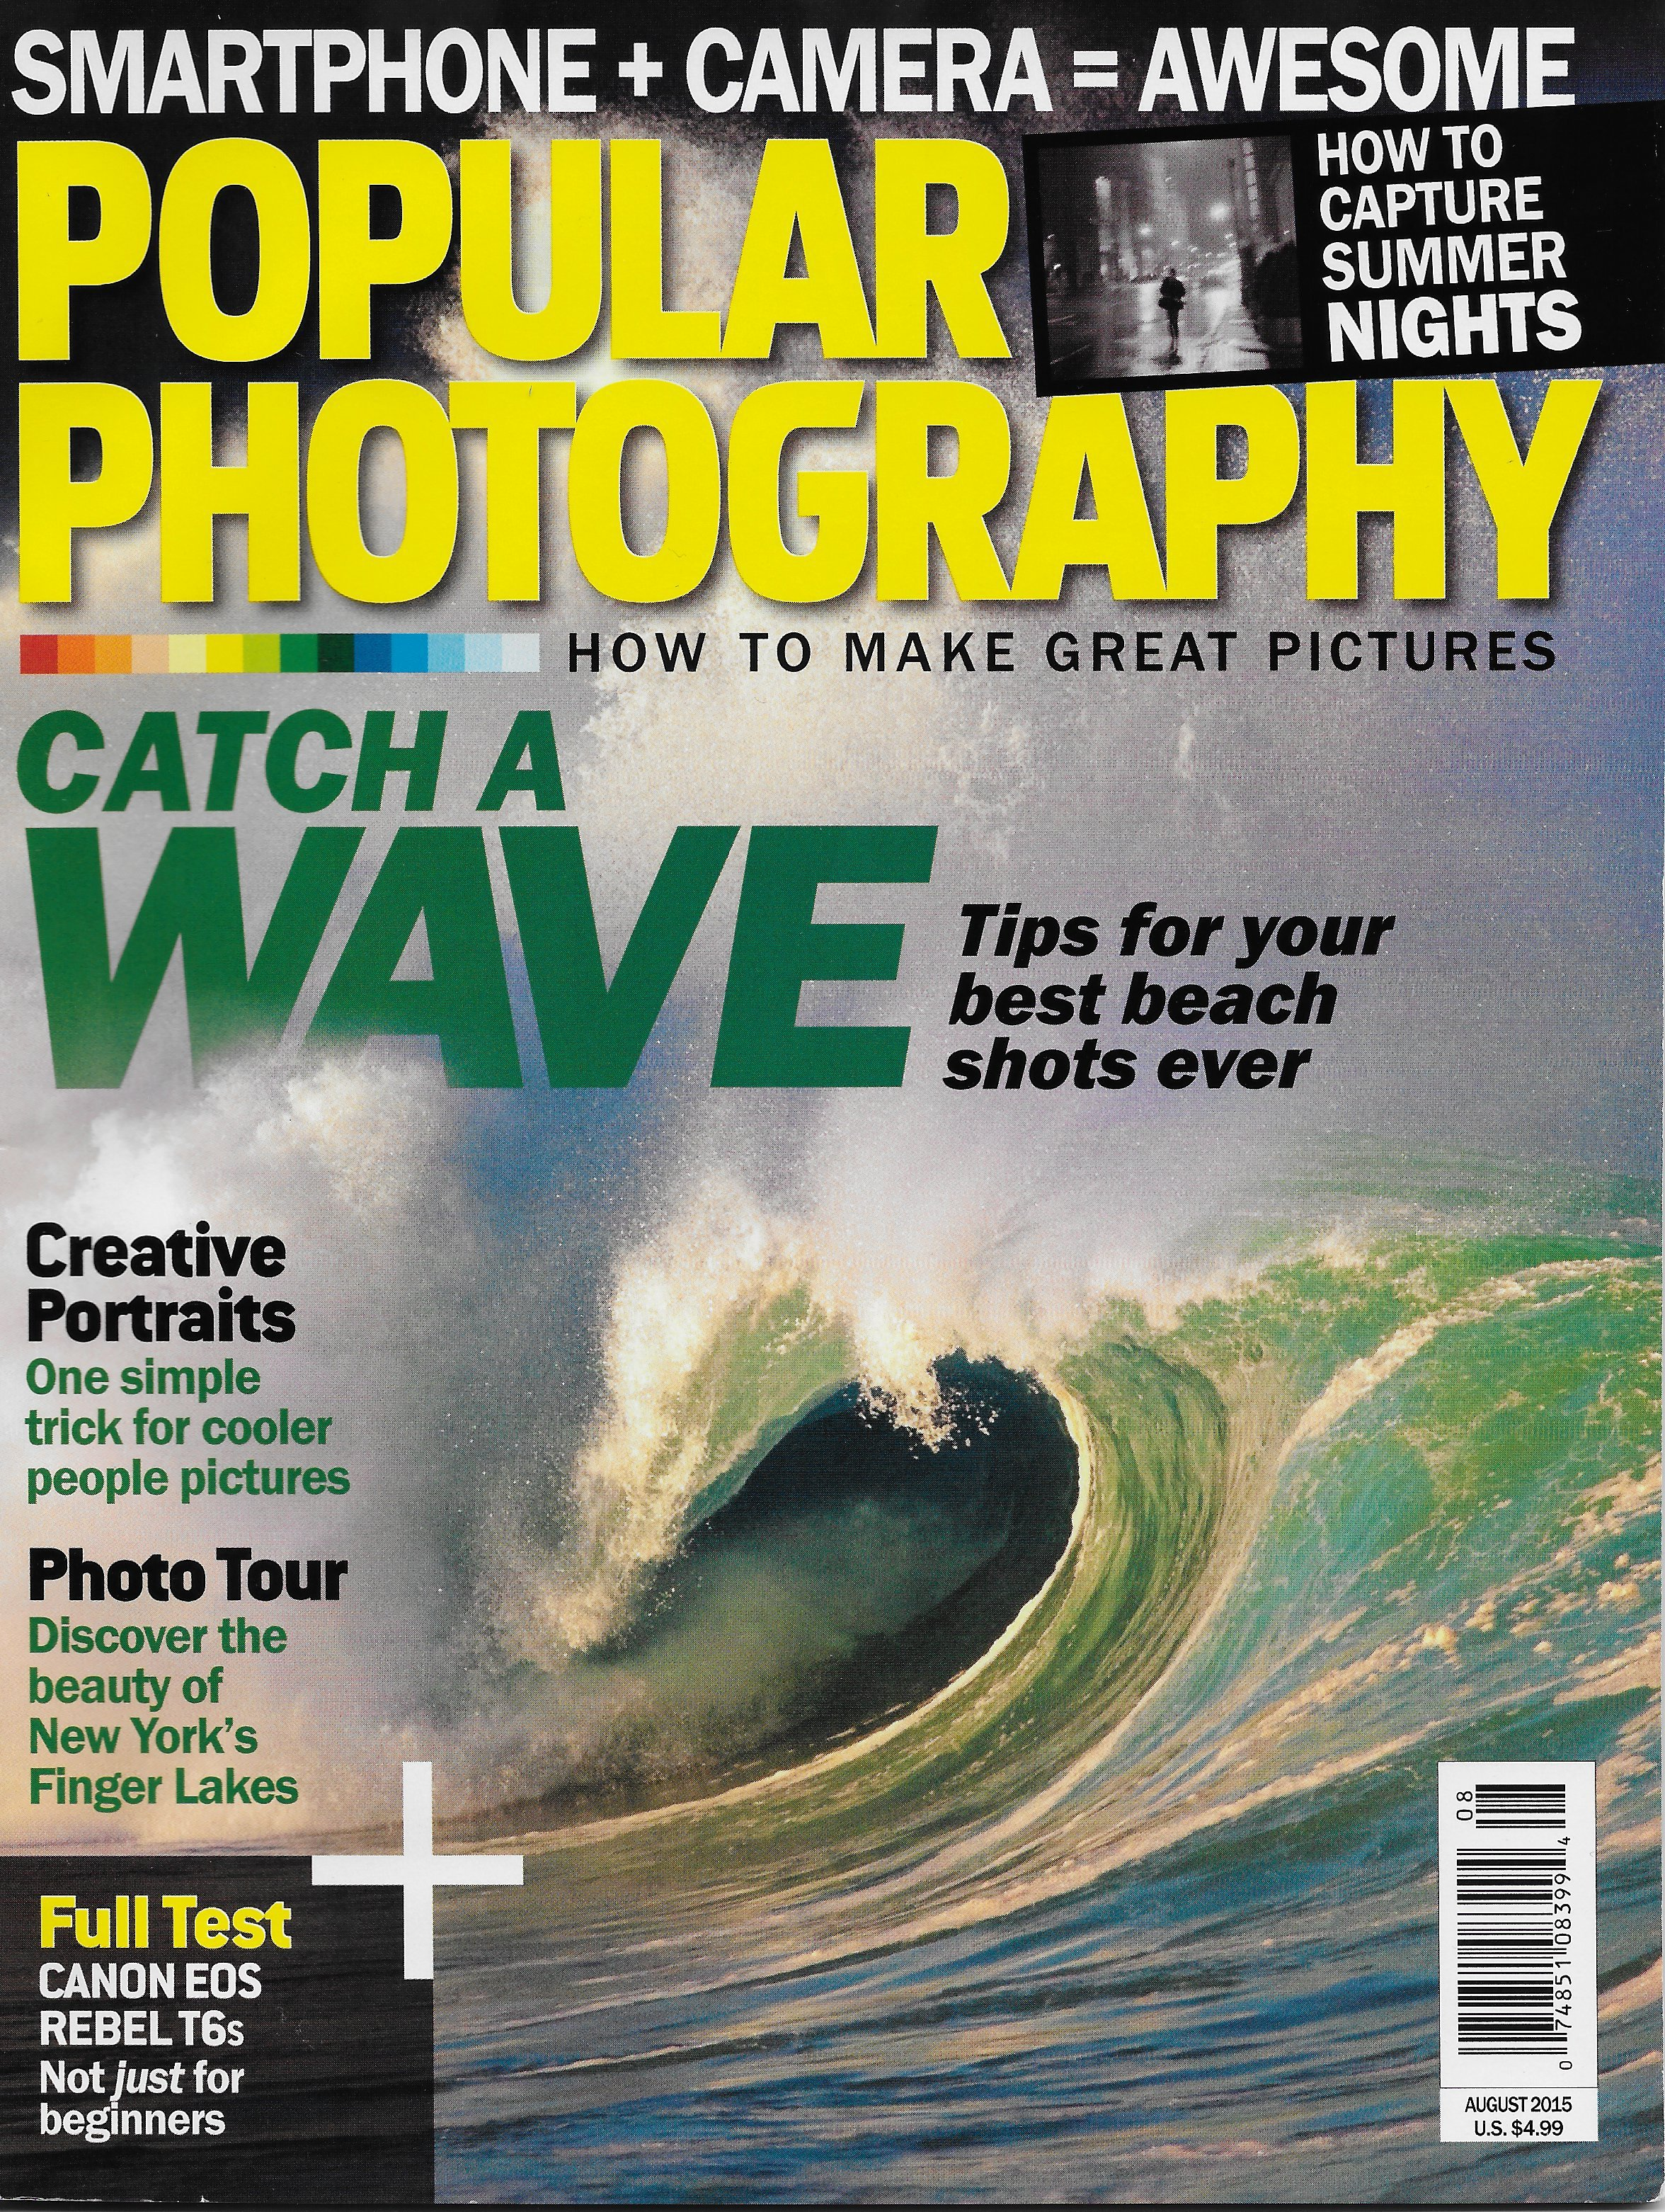 A more recent example of a Popular Photography cover